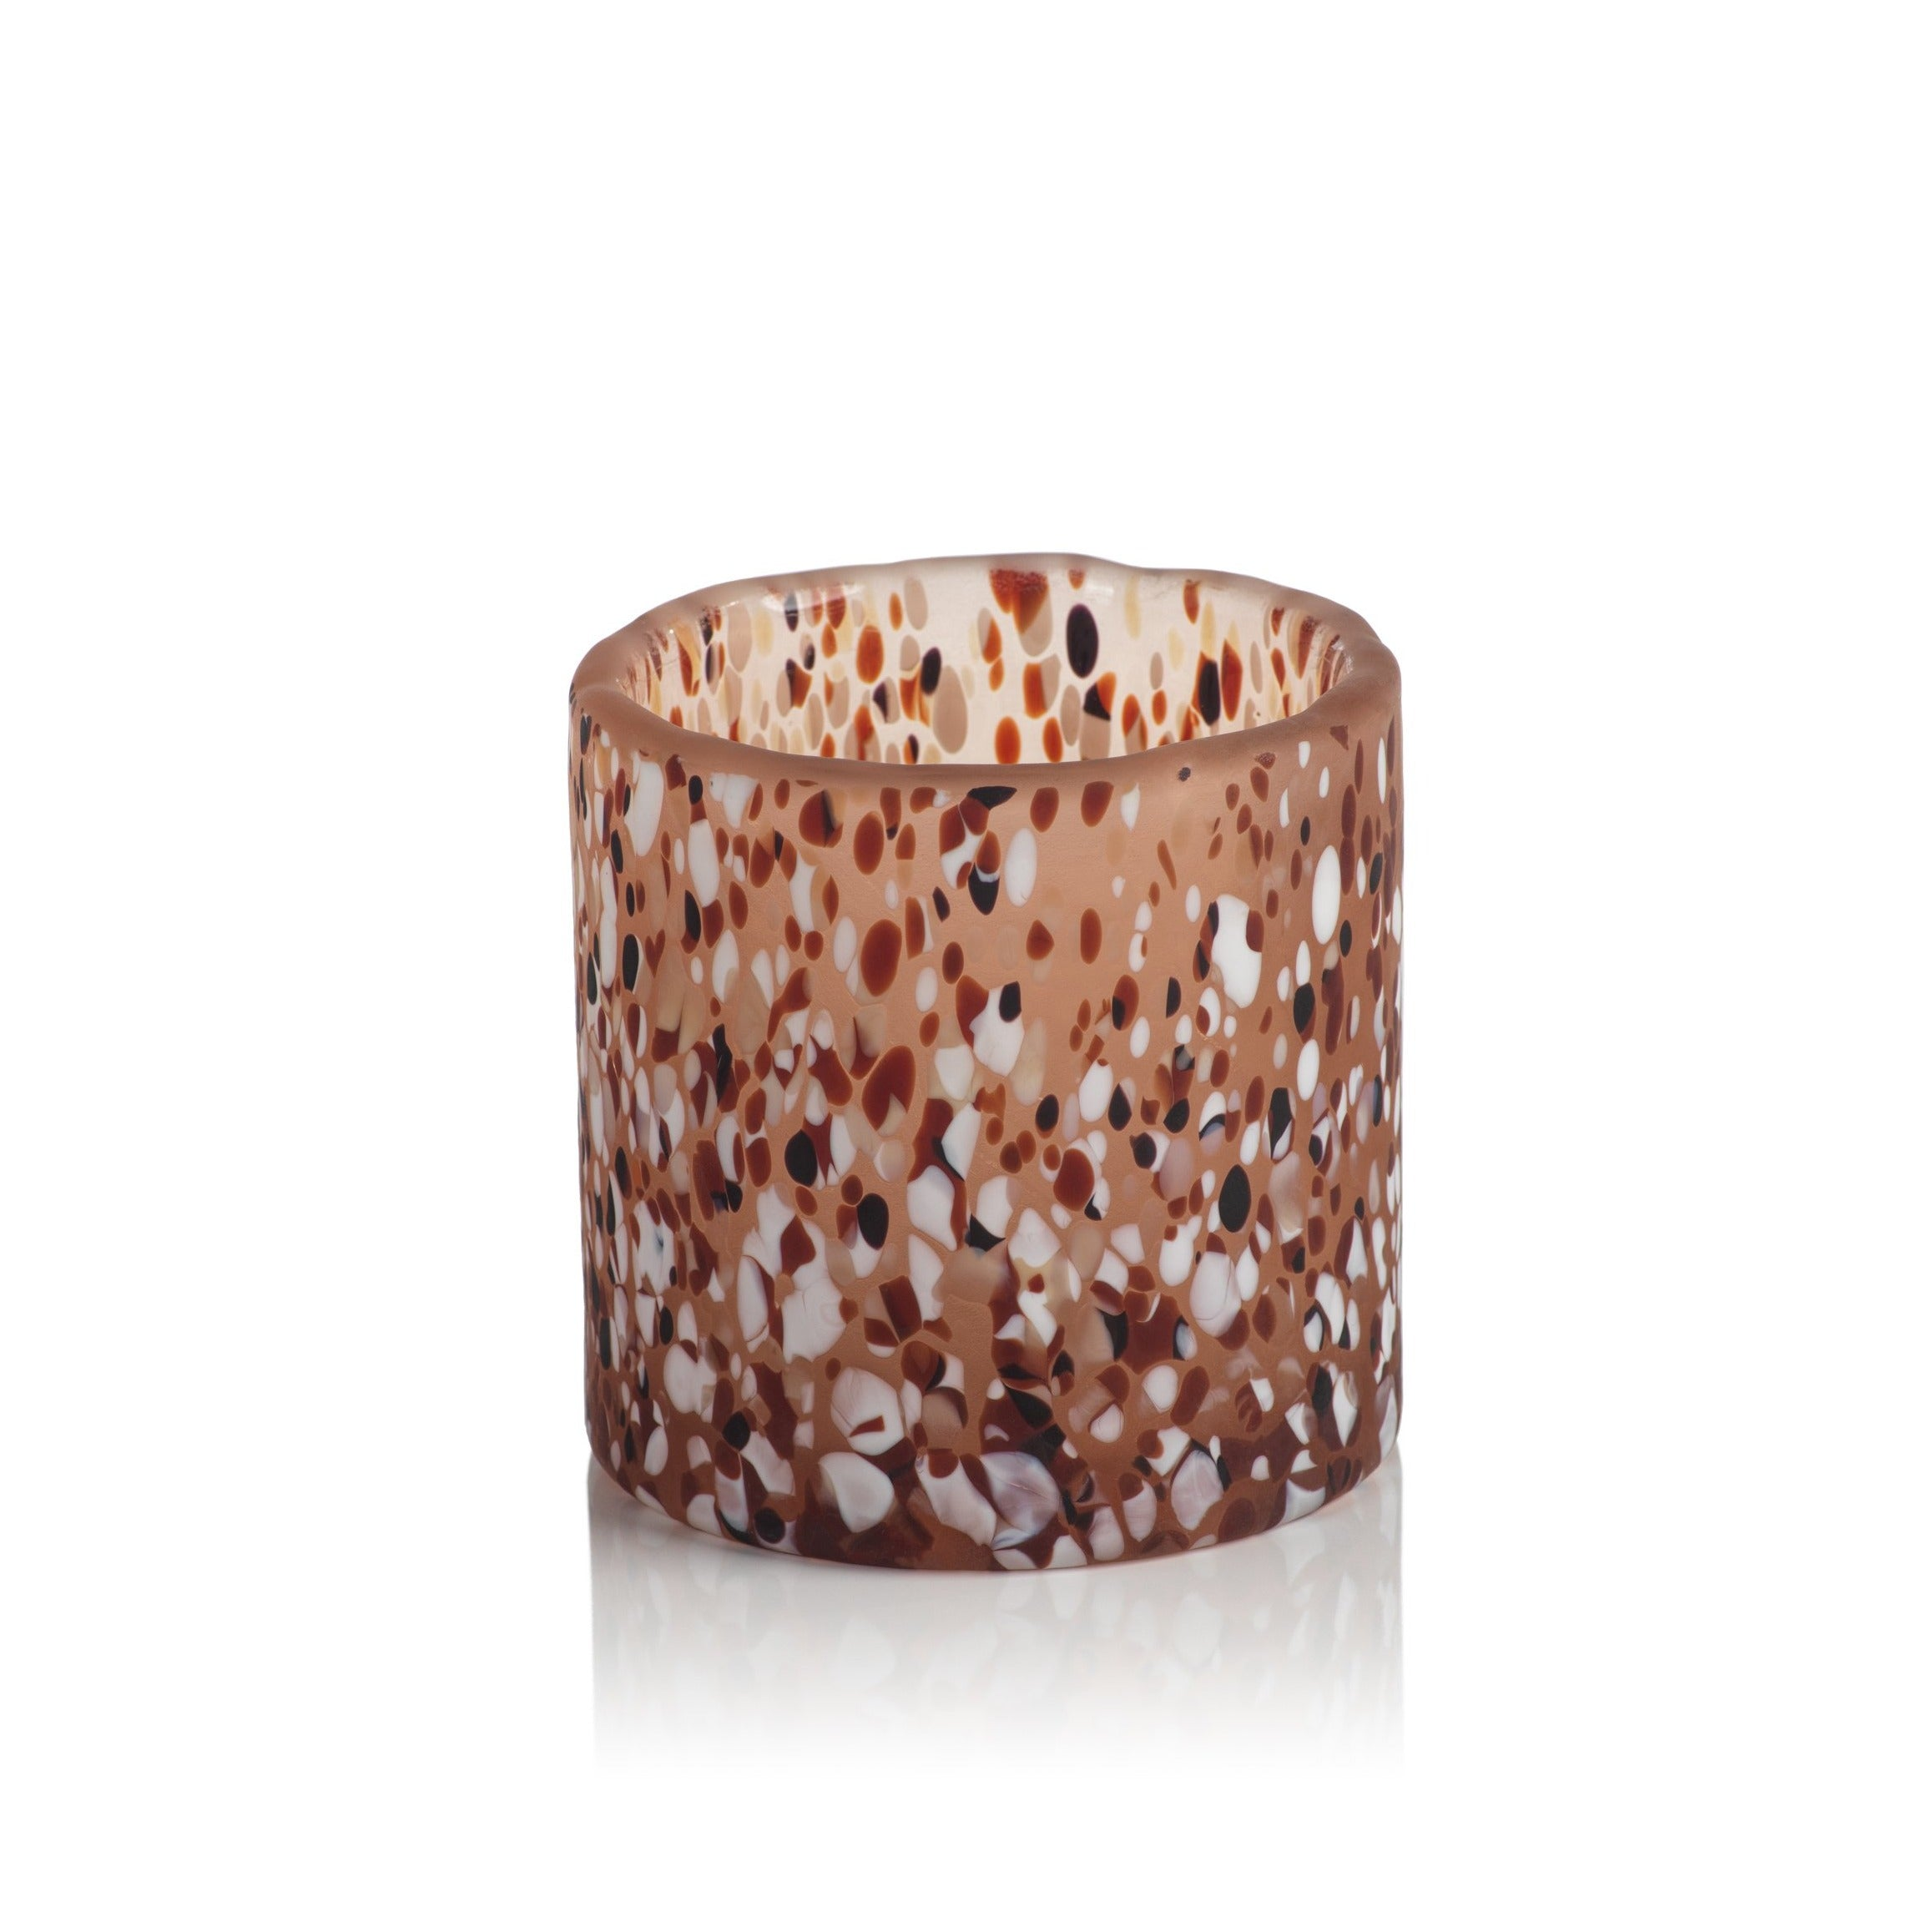 Agiba Blush Terrazzo Glass Candle Holder - CARLYLE AVENUE